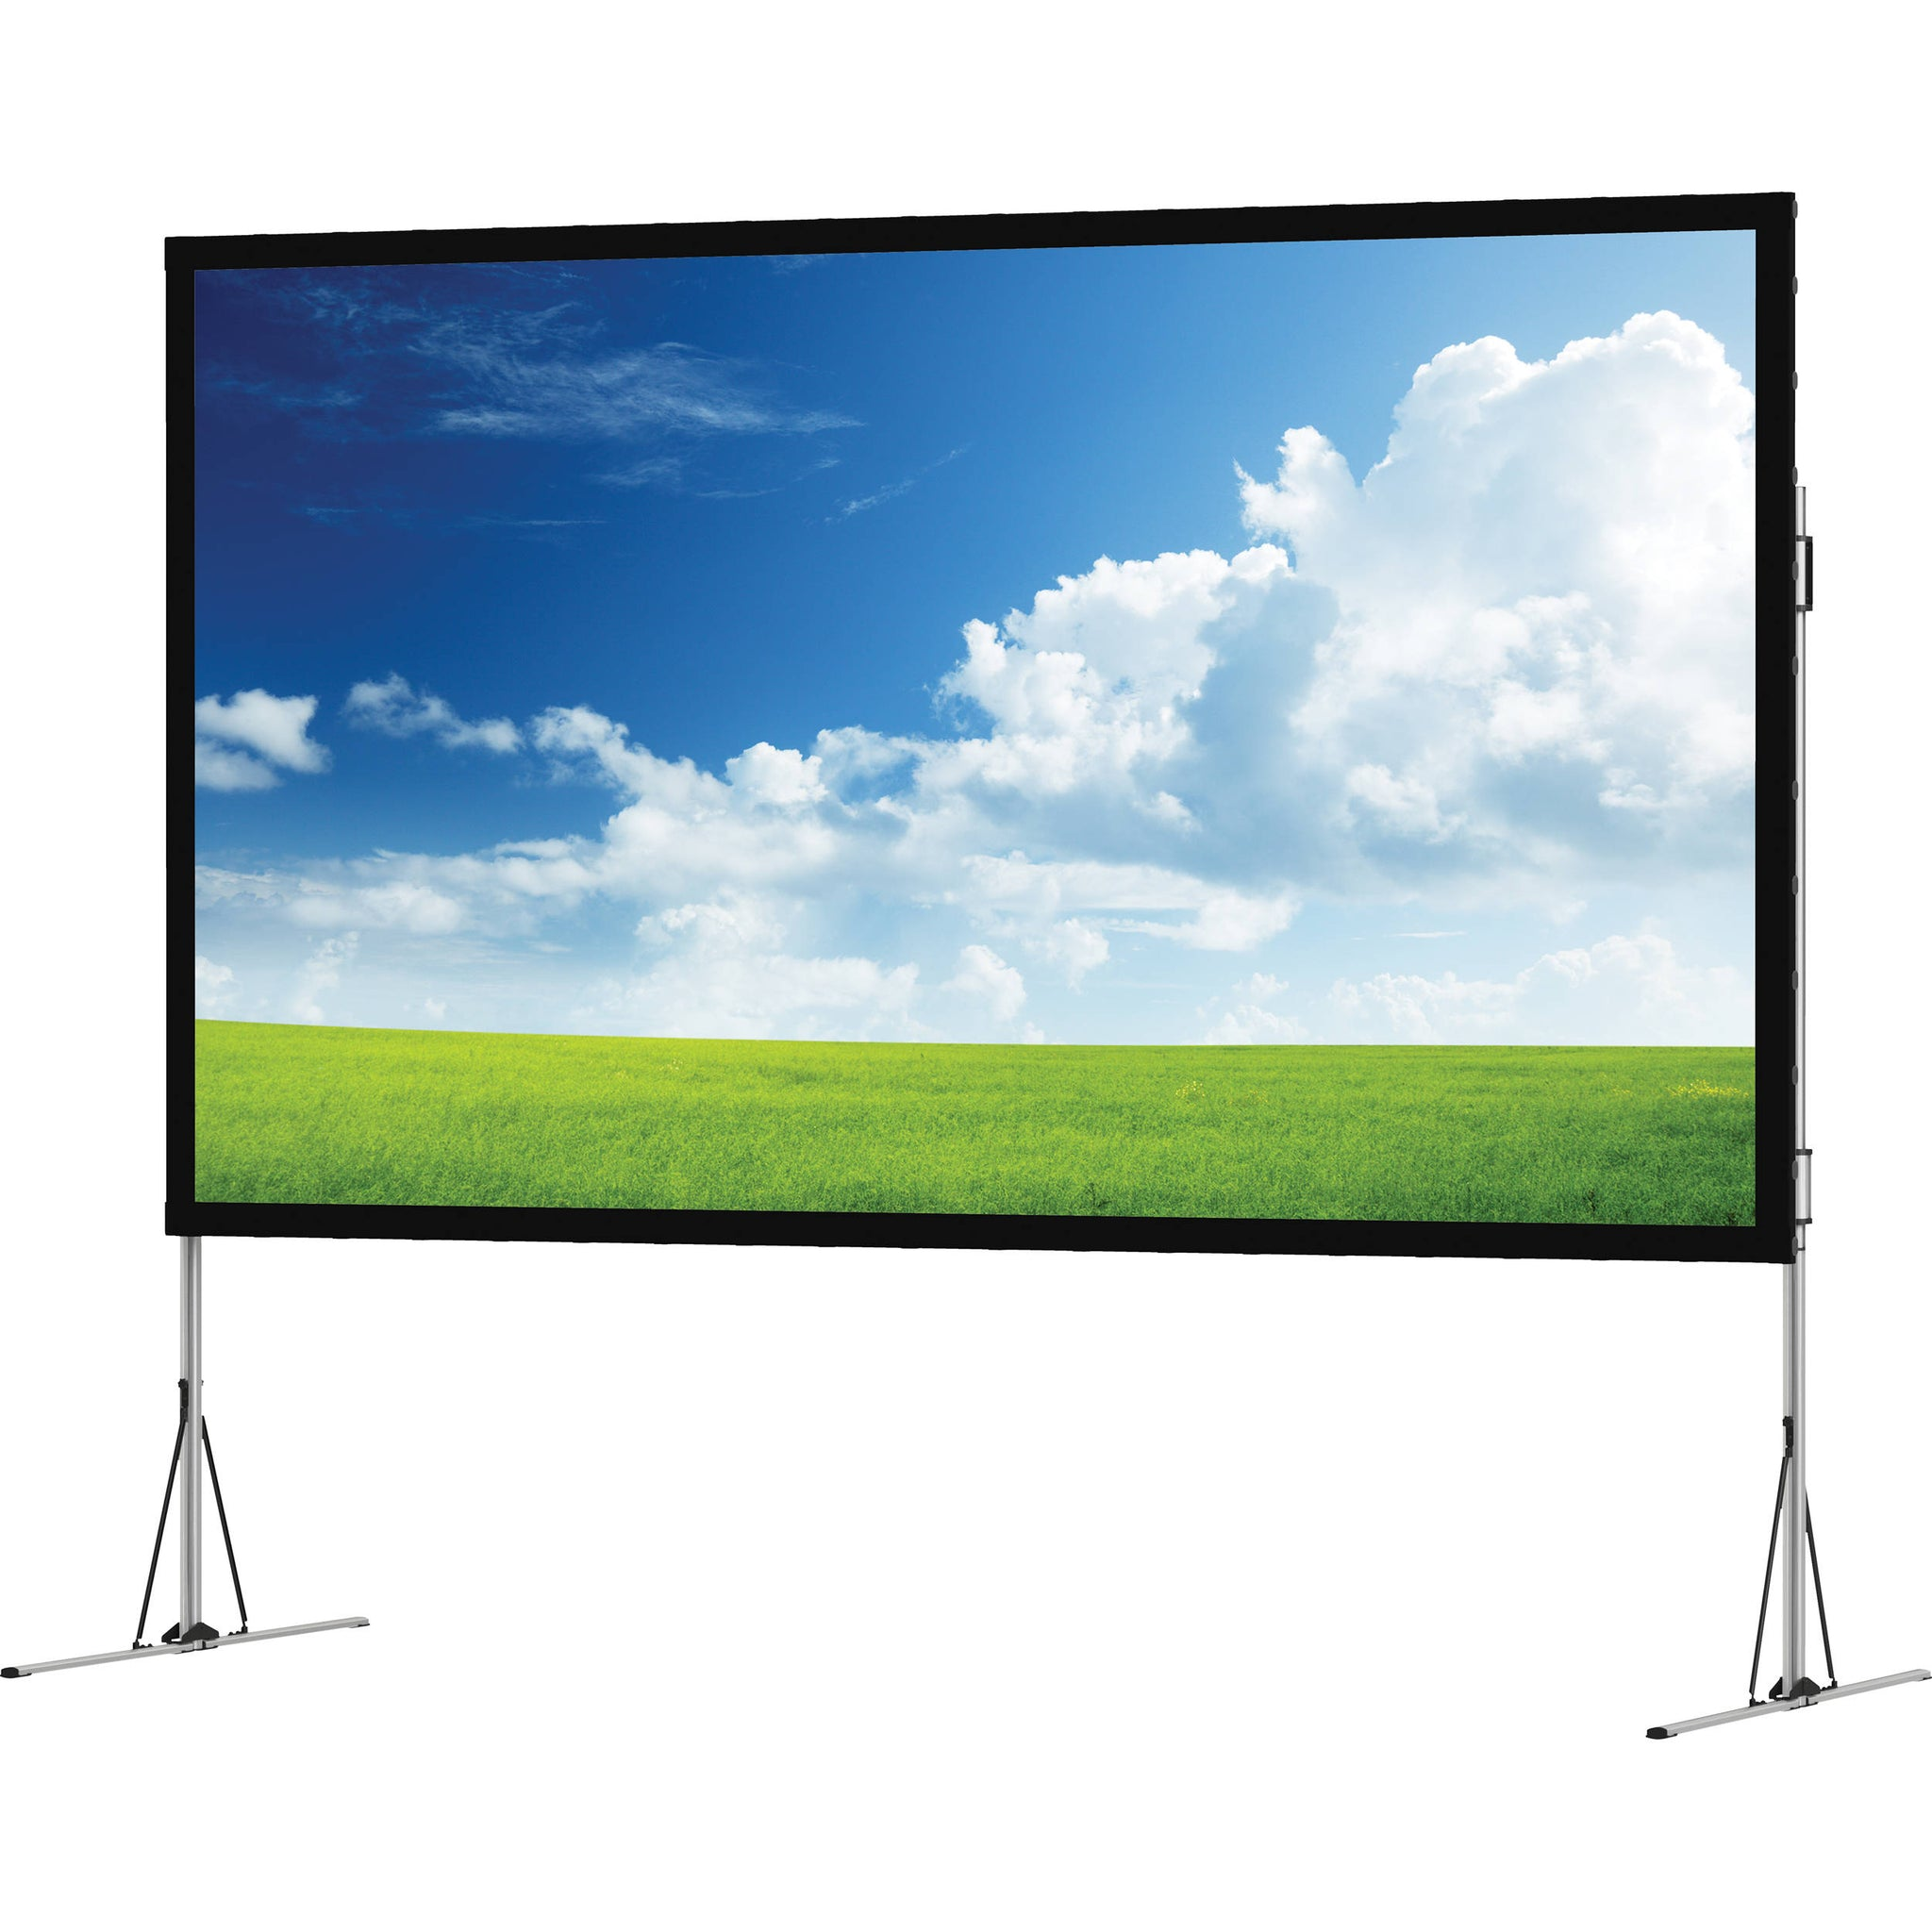 "Avico JK 159"" 342.5 x 214 Fast Fold Front and Rear Projection Screen, 16:10 JK-FF10 159FPRP"